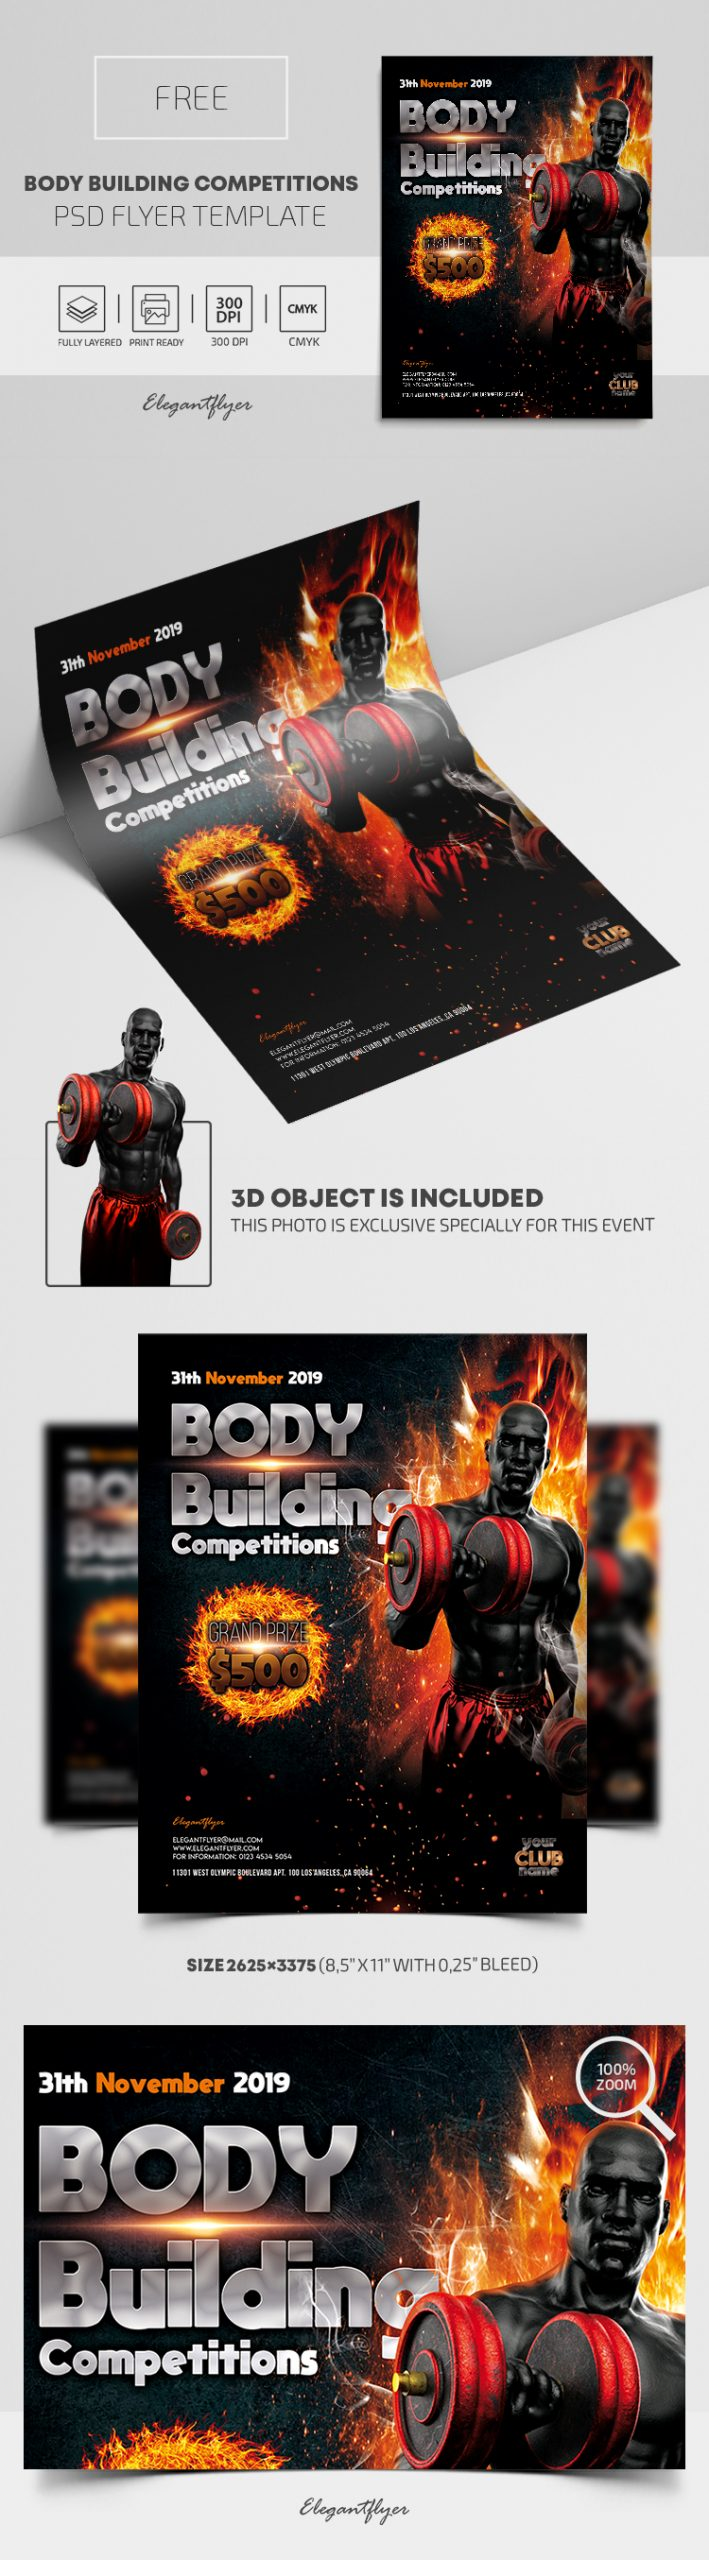 Body Building Competitions – Free PSD Flyer Template